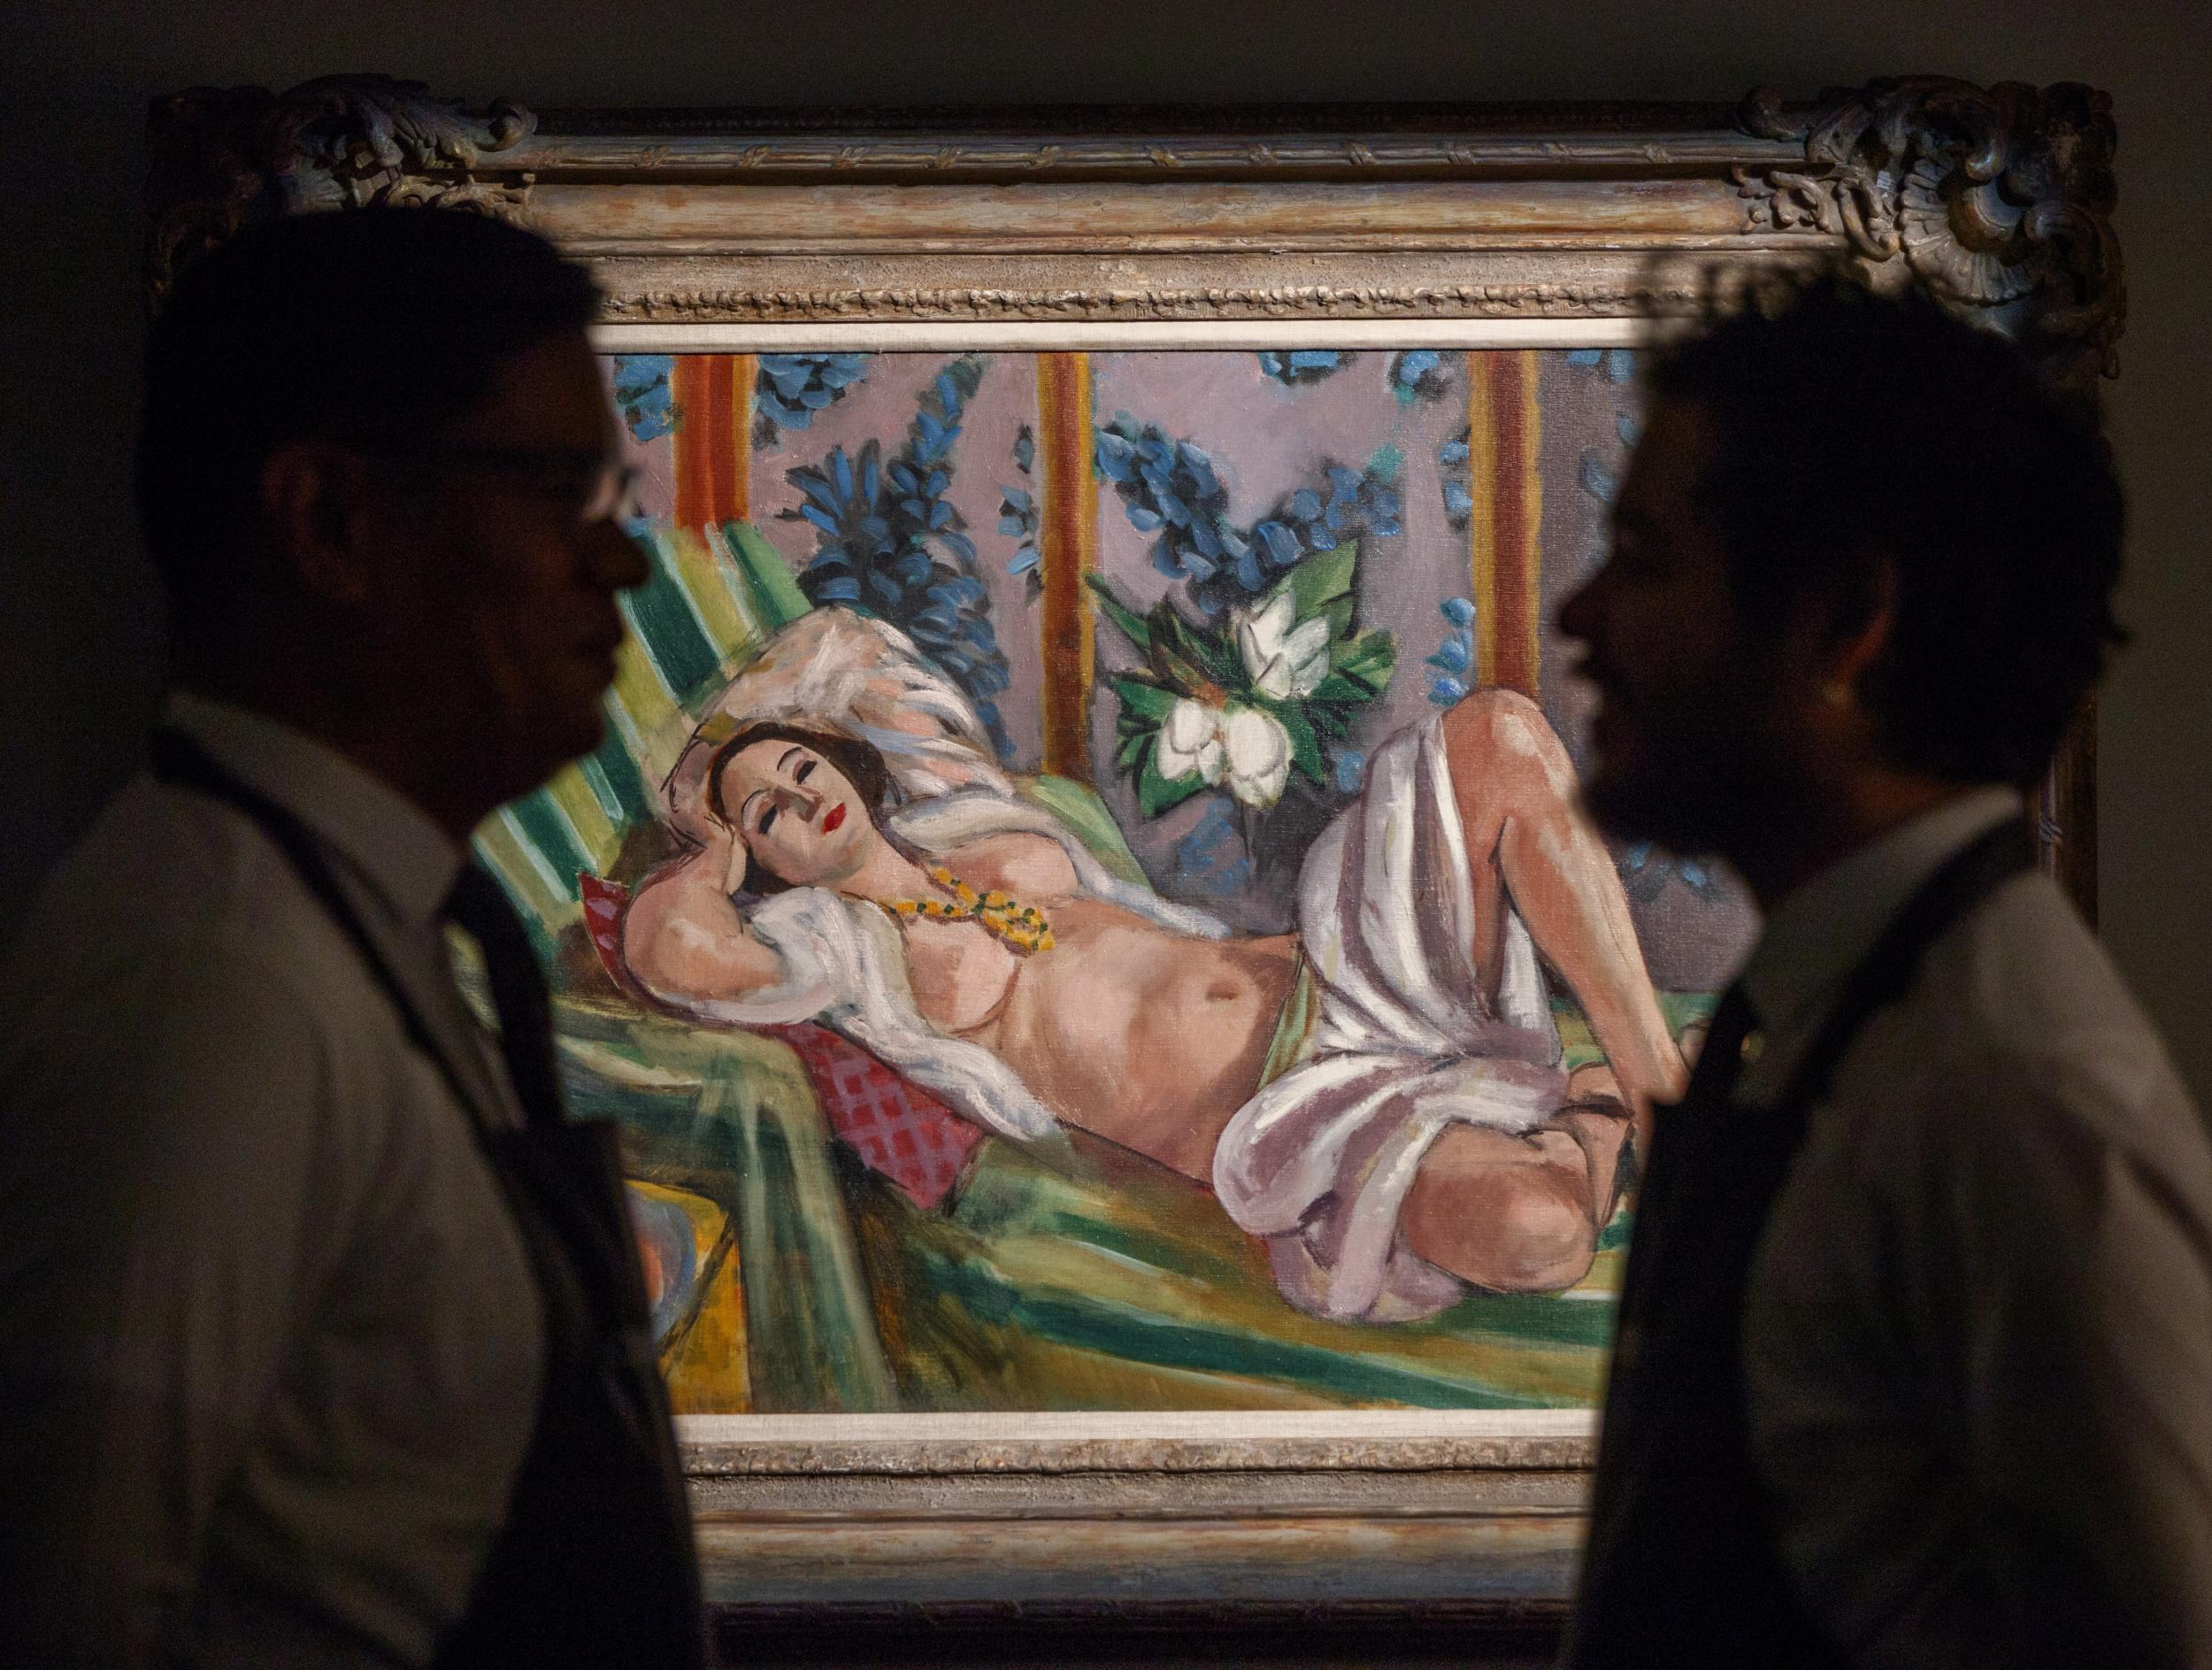 Rockefeller auction fetches £476m on first night as historic art works sell for record prices